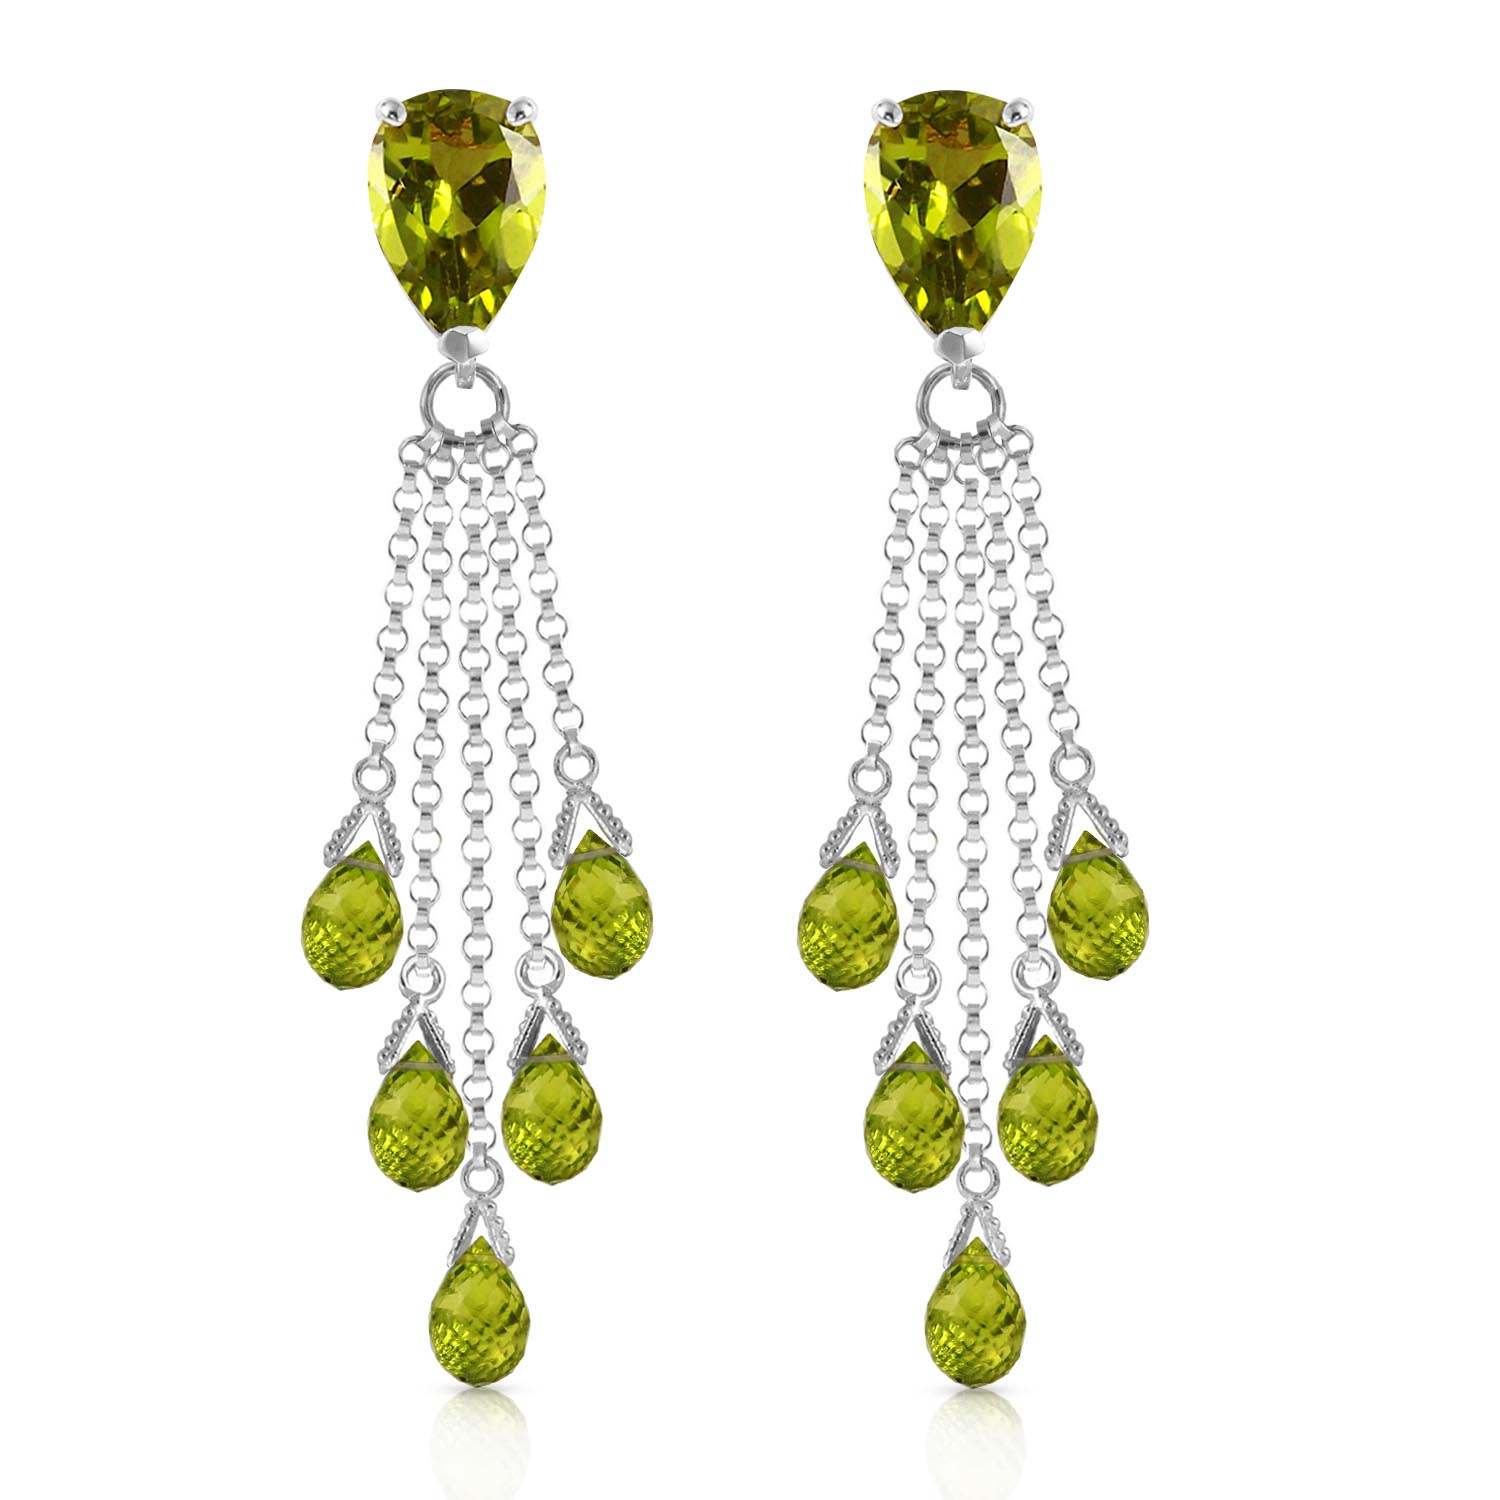 Peridot Comet Tail Drop Earrings 15.5ctw in 9ct White Gold